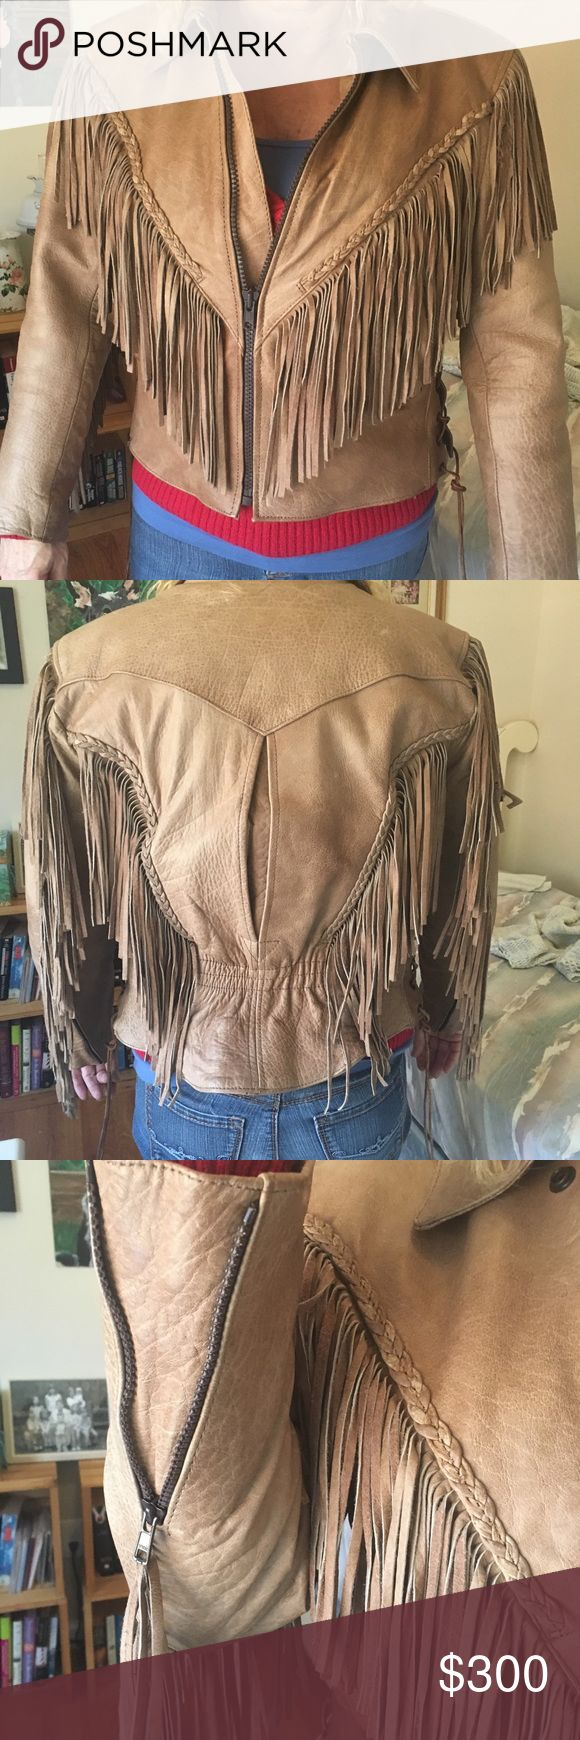 Tan genuine leather Unik jacket Beautiful leather jacket purchased for $400 at Harley Davidson store. Has insulated zip out liner. Only worn a few times. Perfect condition!! Unik Jackets & Coats